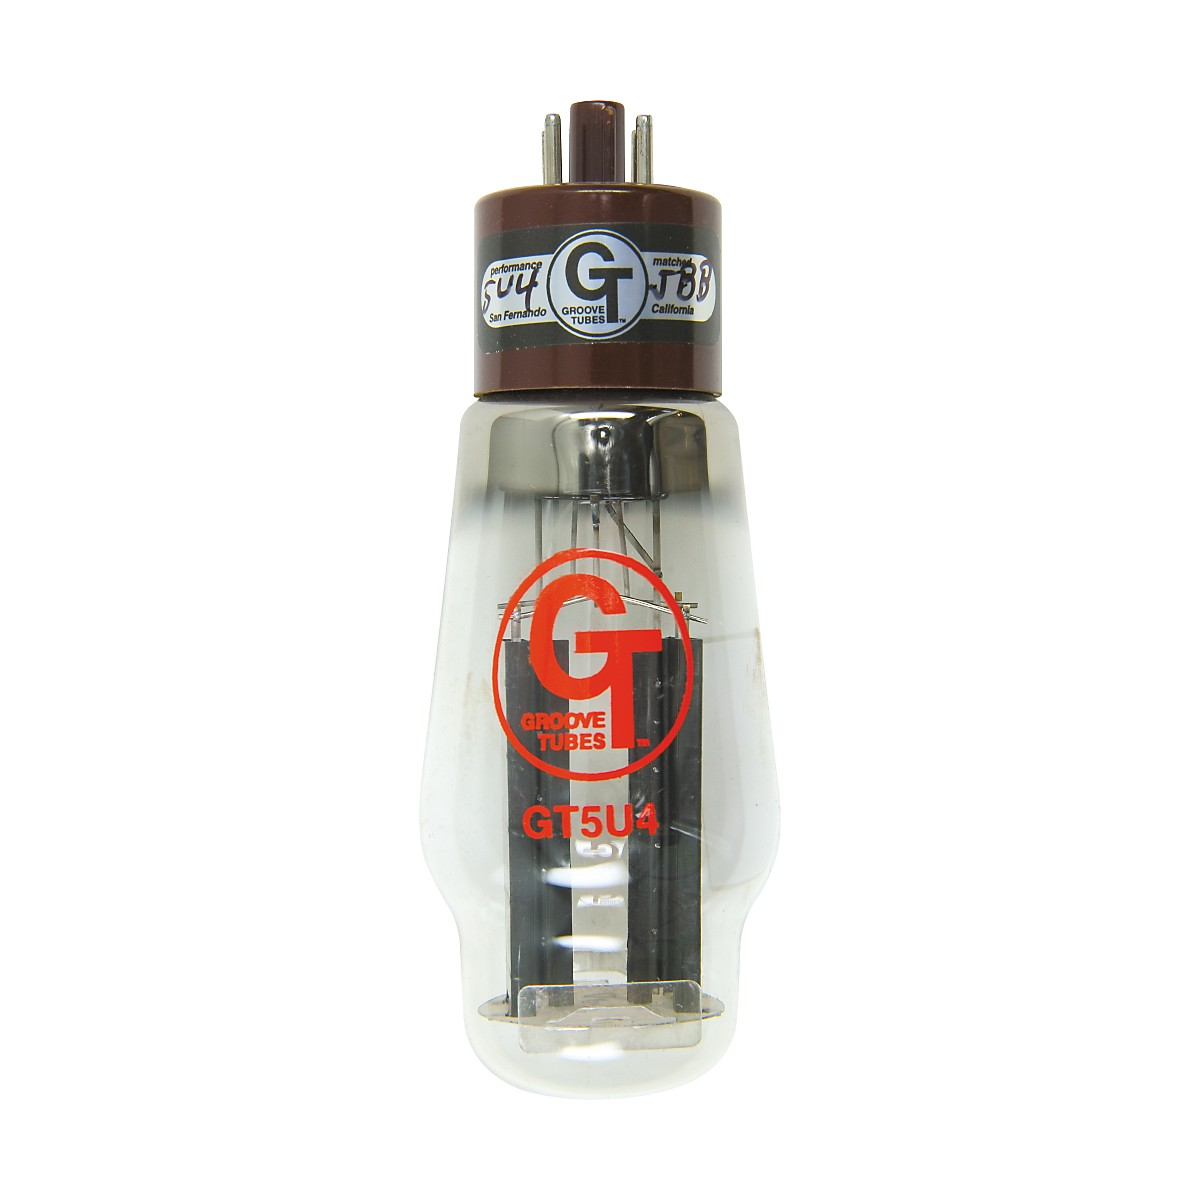 Groove Tubes Gold Series GT-5U4 GZ32 Rectifier Tube